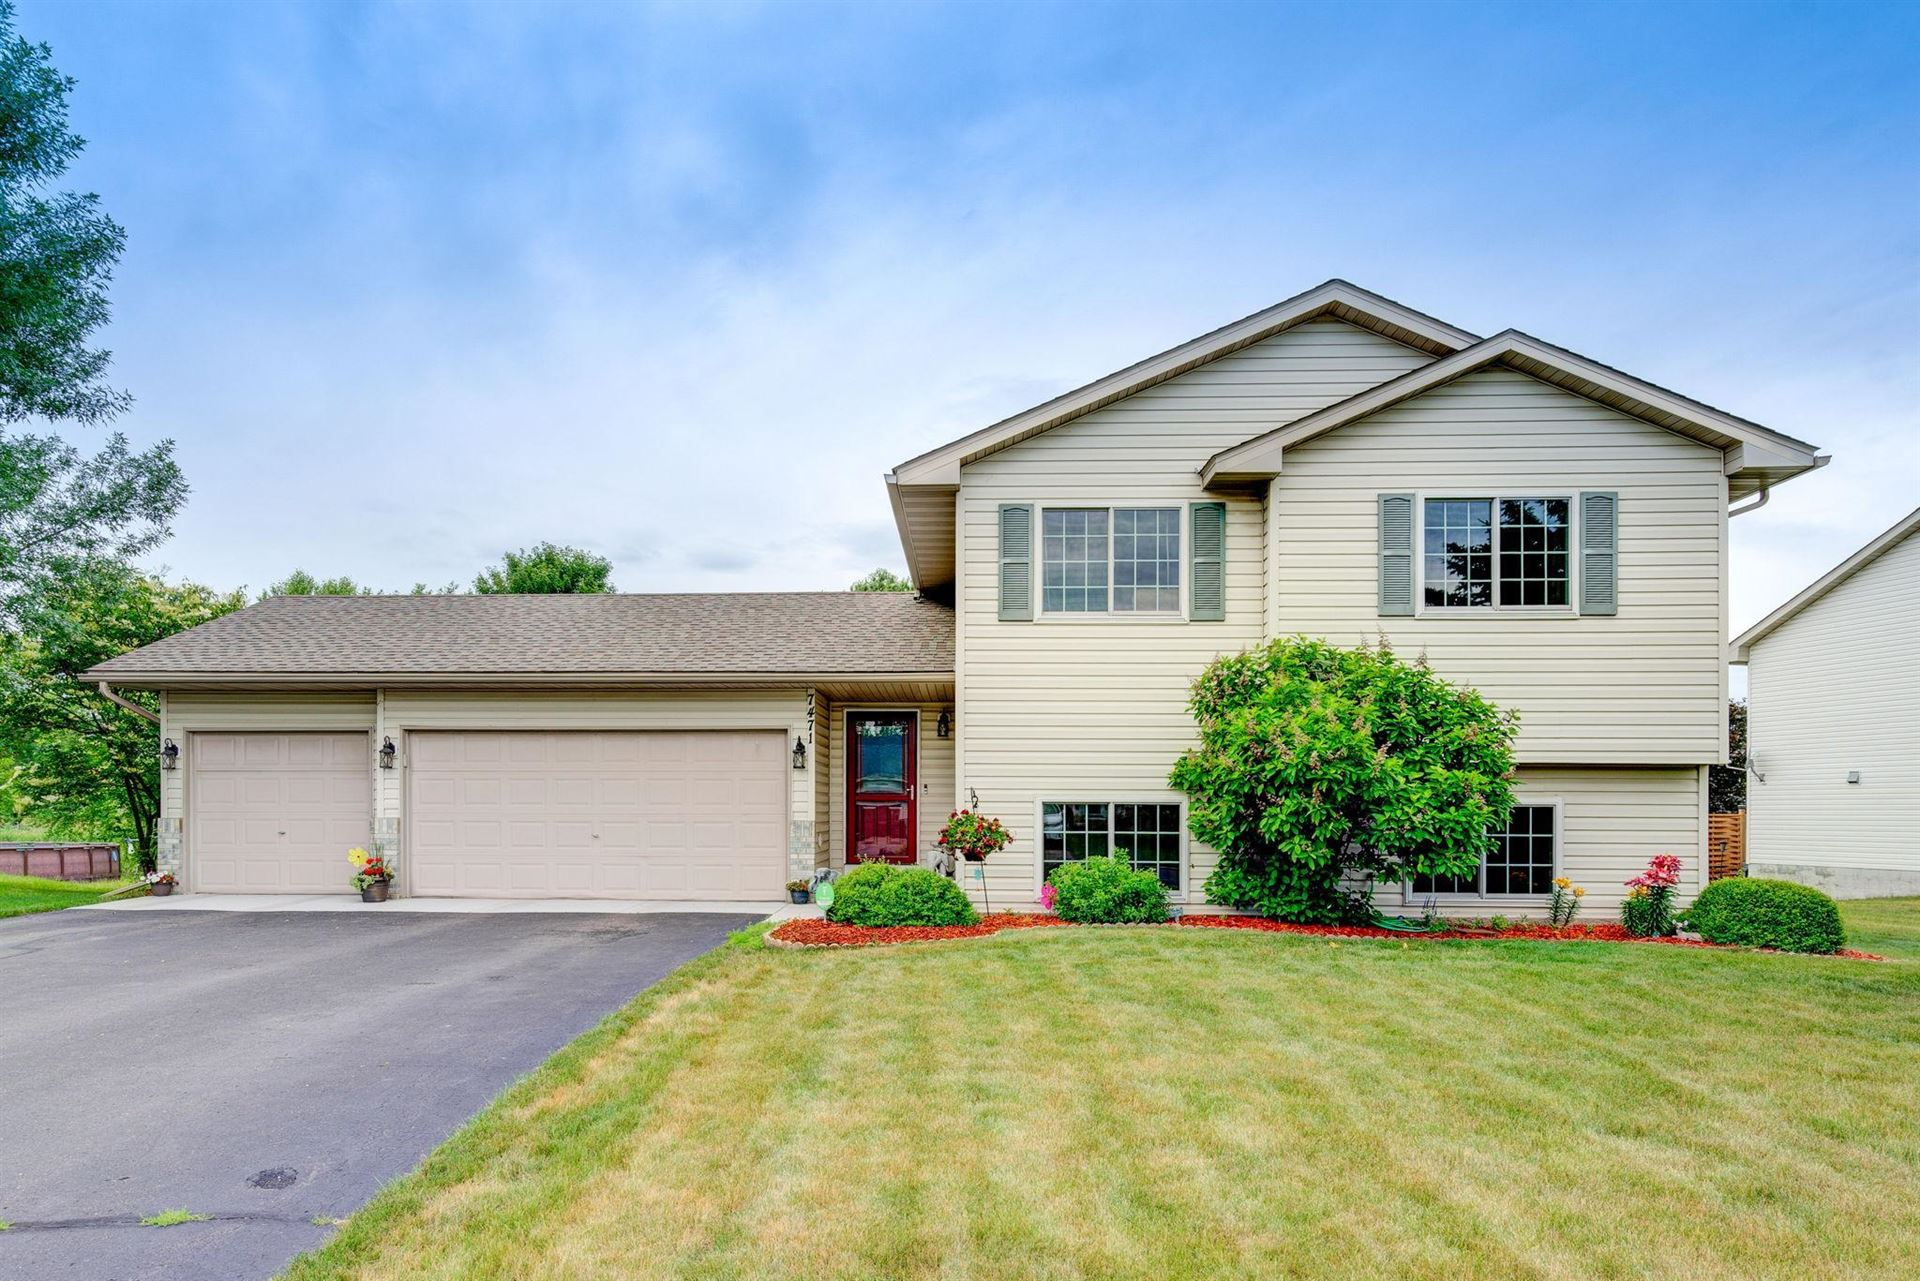 Photo for 7471 Wellington Drive, North Branch, MN 55056 (MLS # 5613750)